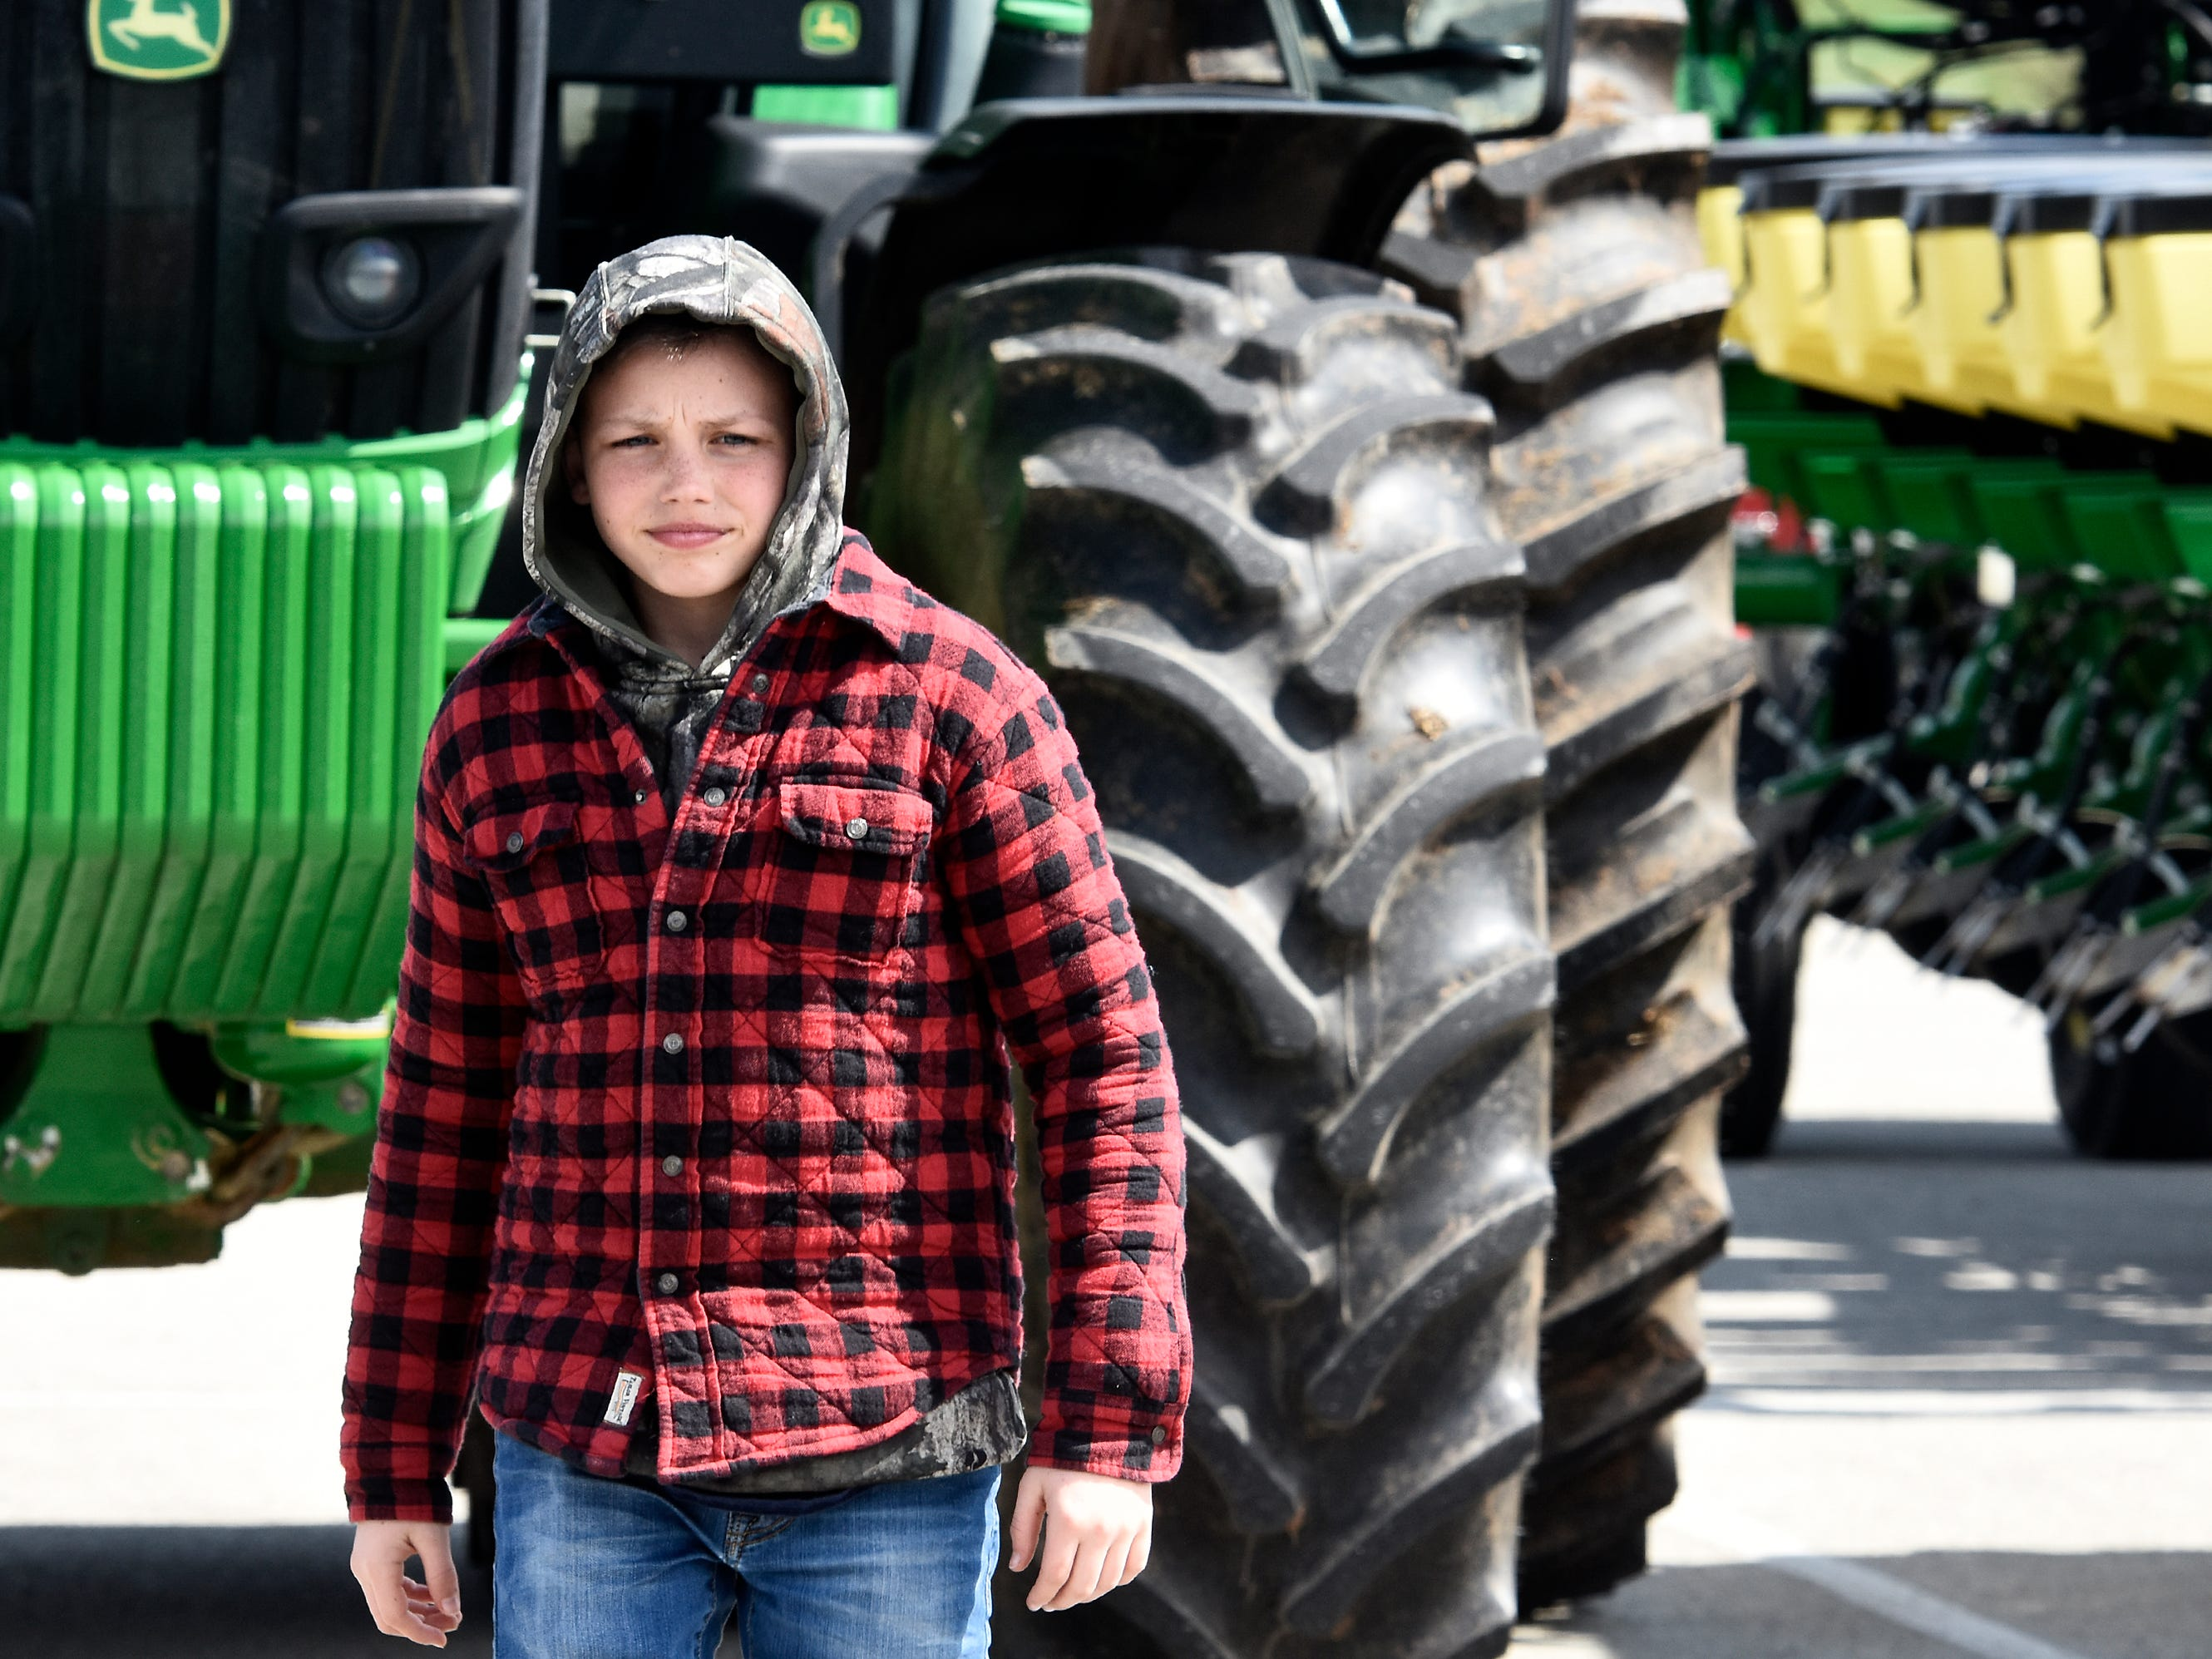 Future Farmers Club members helped out during the district's 6th Annual Rollin' Tractor Show Thursday, April 11, 2019. The show is presented by the Future Farmers Club. Alumni and area residents brought farm equipment to display with the goal of acquainting students with the agriculture industry. The show, which included a parade of equipment, visited the intermediate and elementary schools. Bill Kalina photo